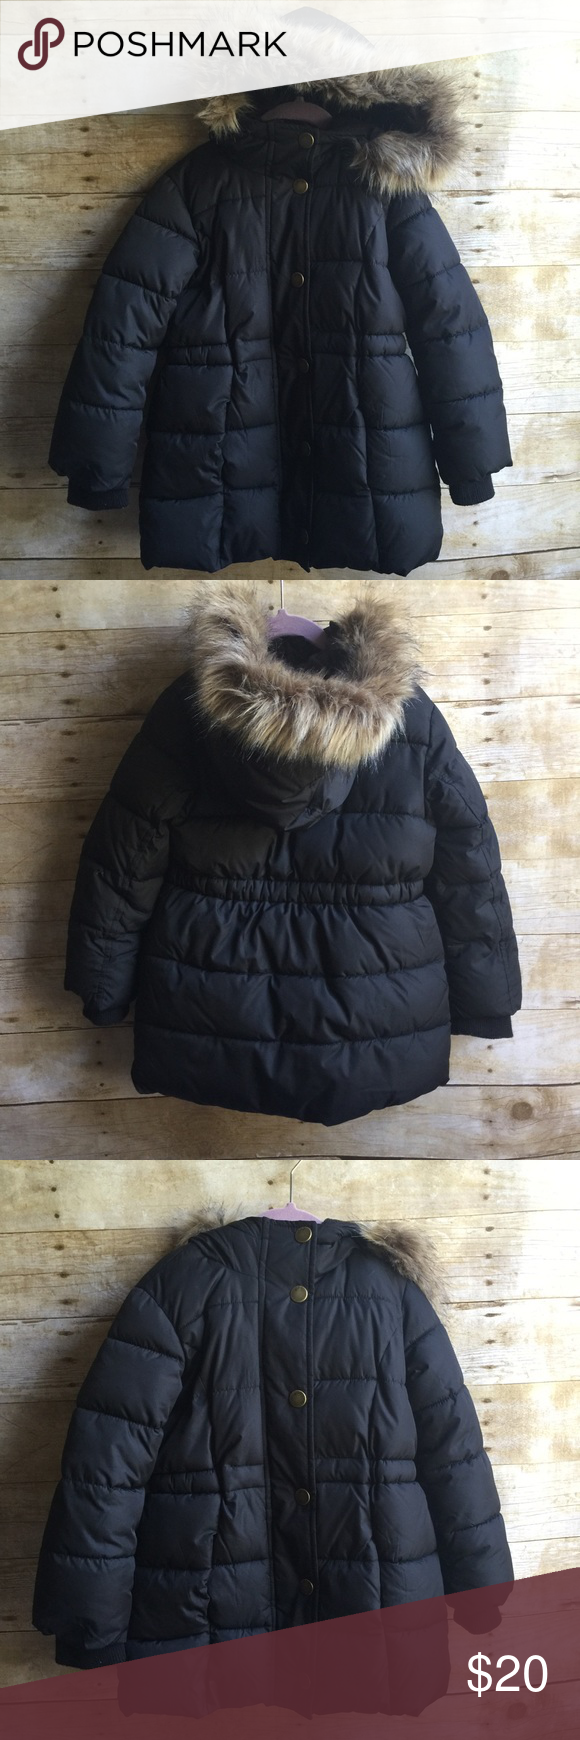 Girls Hooded Puffer Coat Worn maybe 3 times (we live in Florida). Incredibly warm and comfy!! Coat zips up and then buttons over zipper.  Fits 4-6t Gap Jackets & Coats Puffers